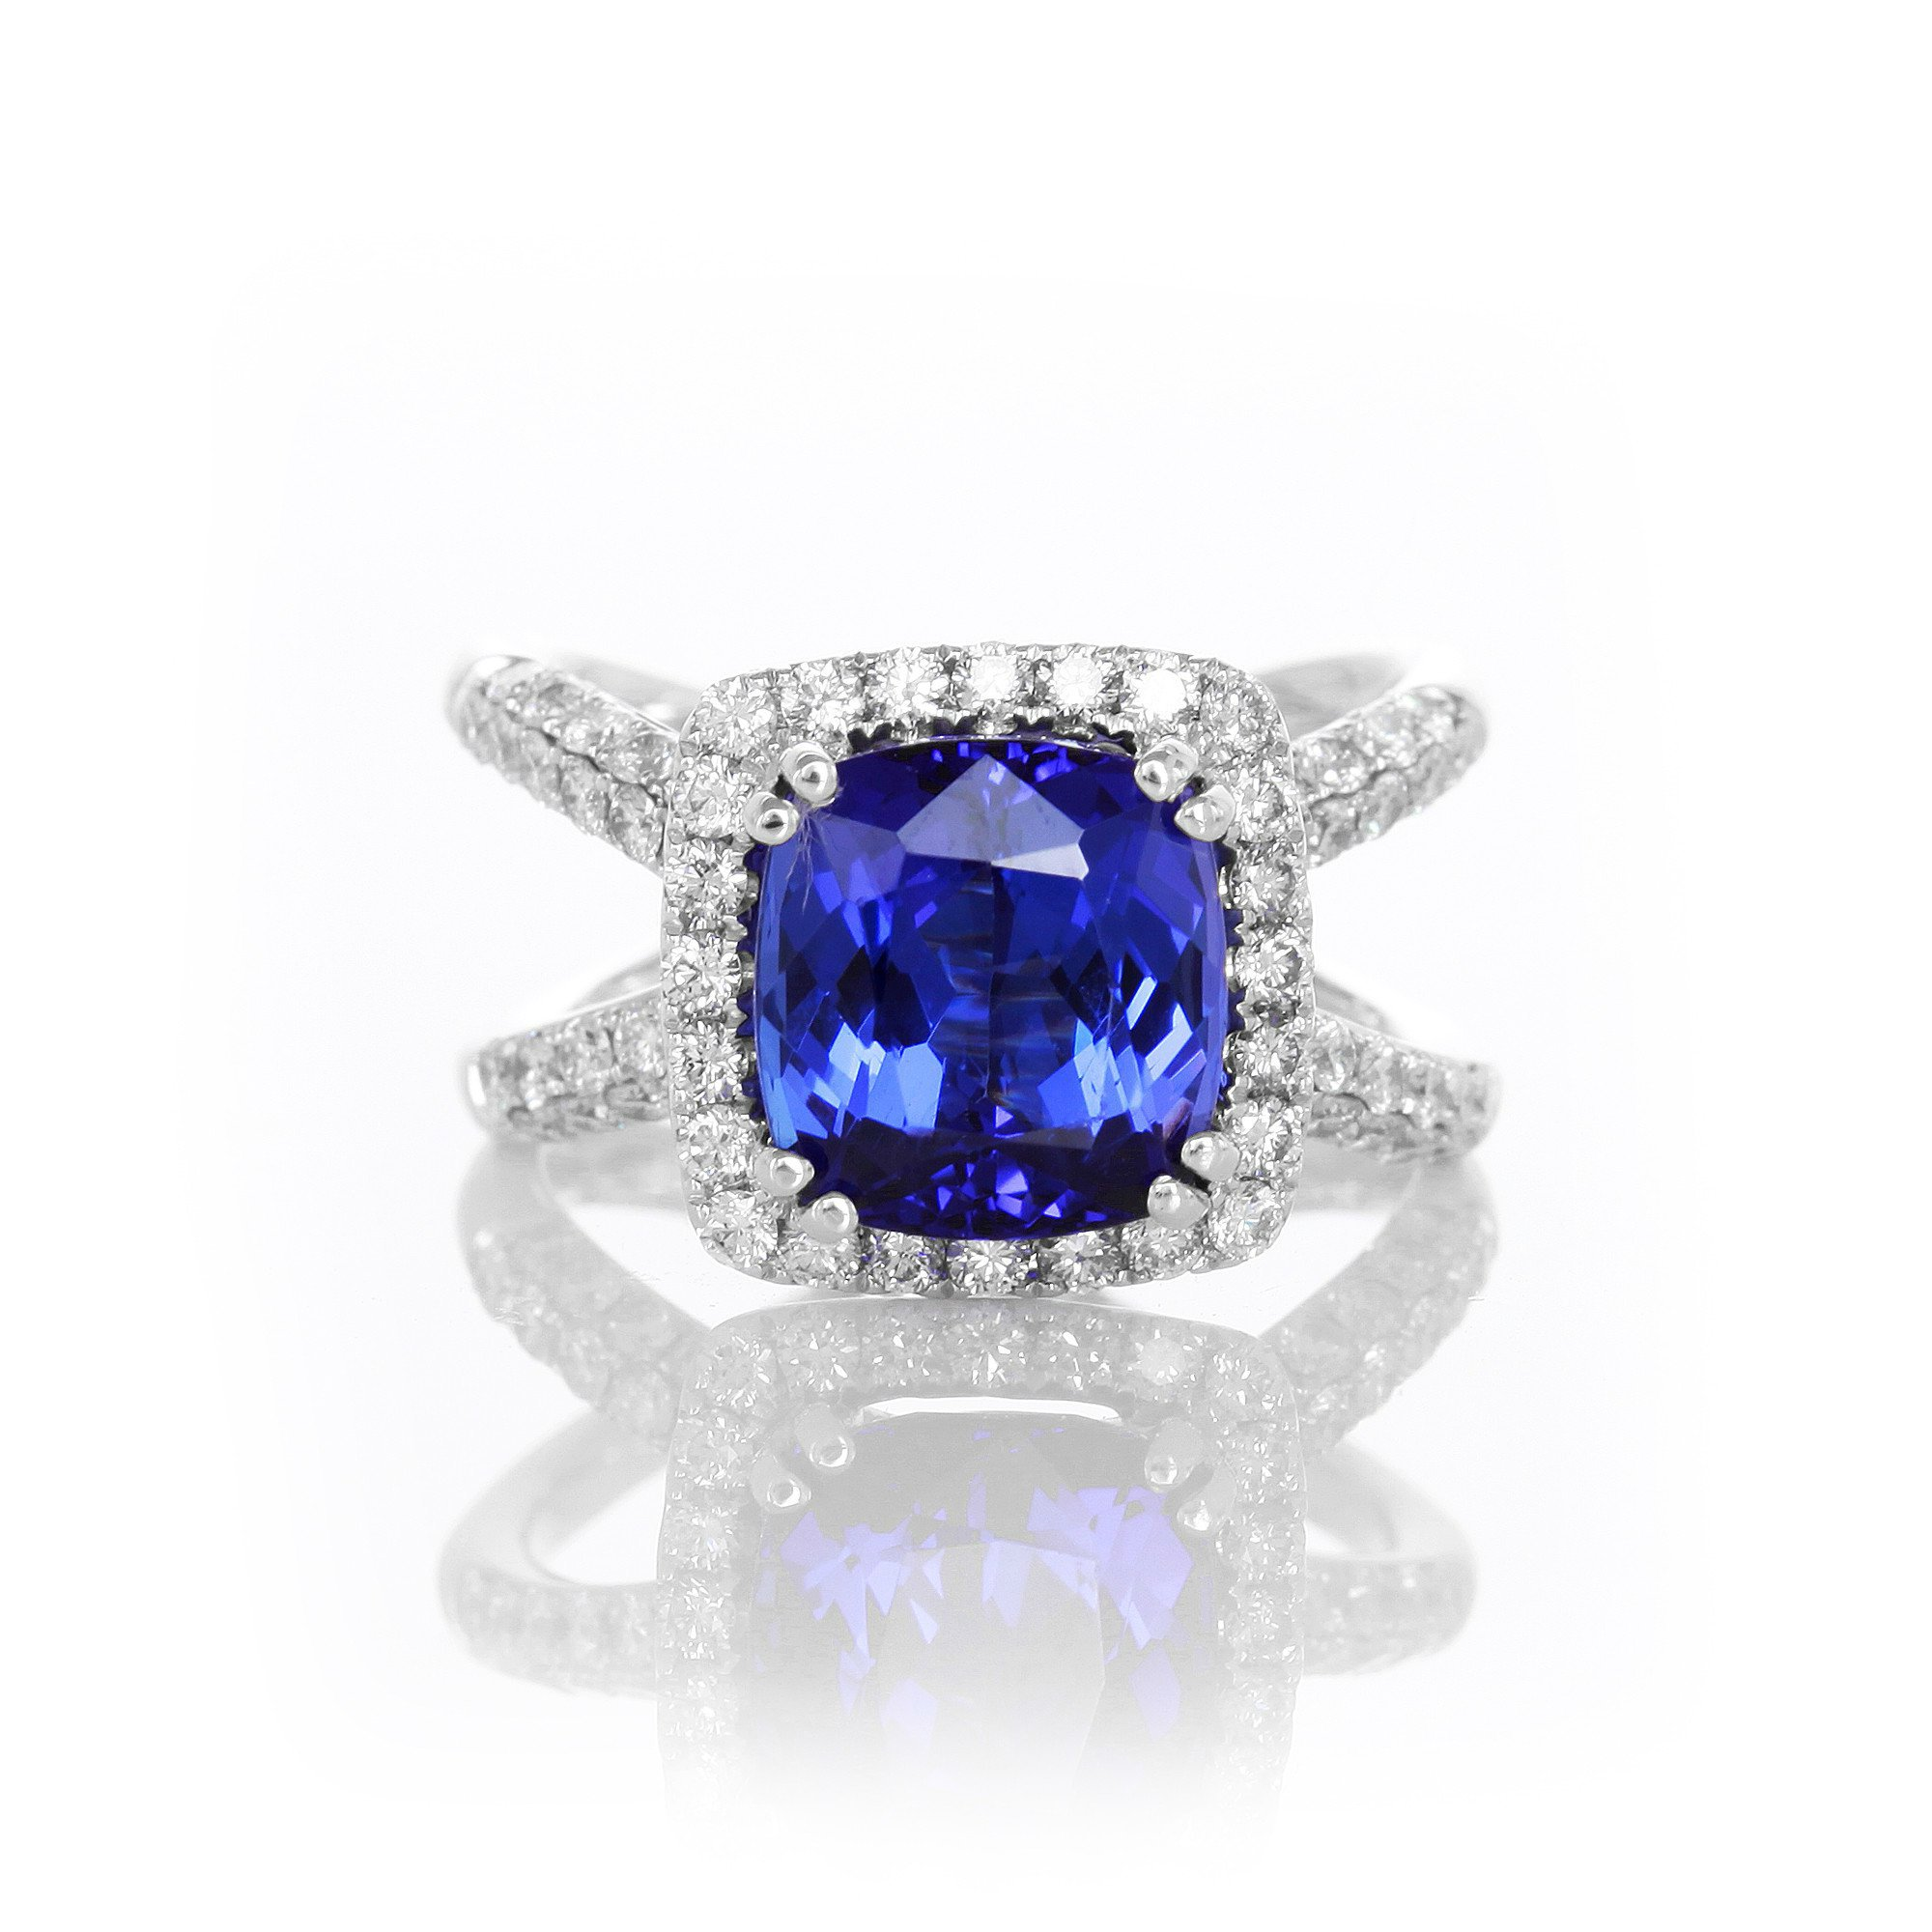 4.25 Carat Cushion Tanzanite & Diamond Split Shank Ring